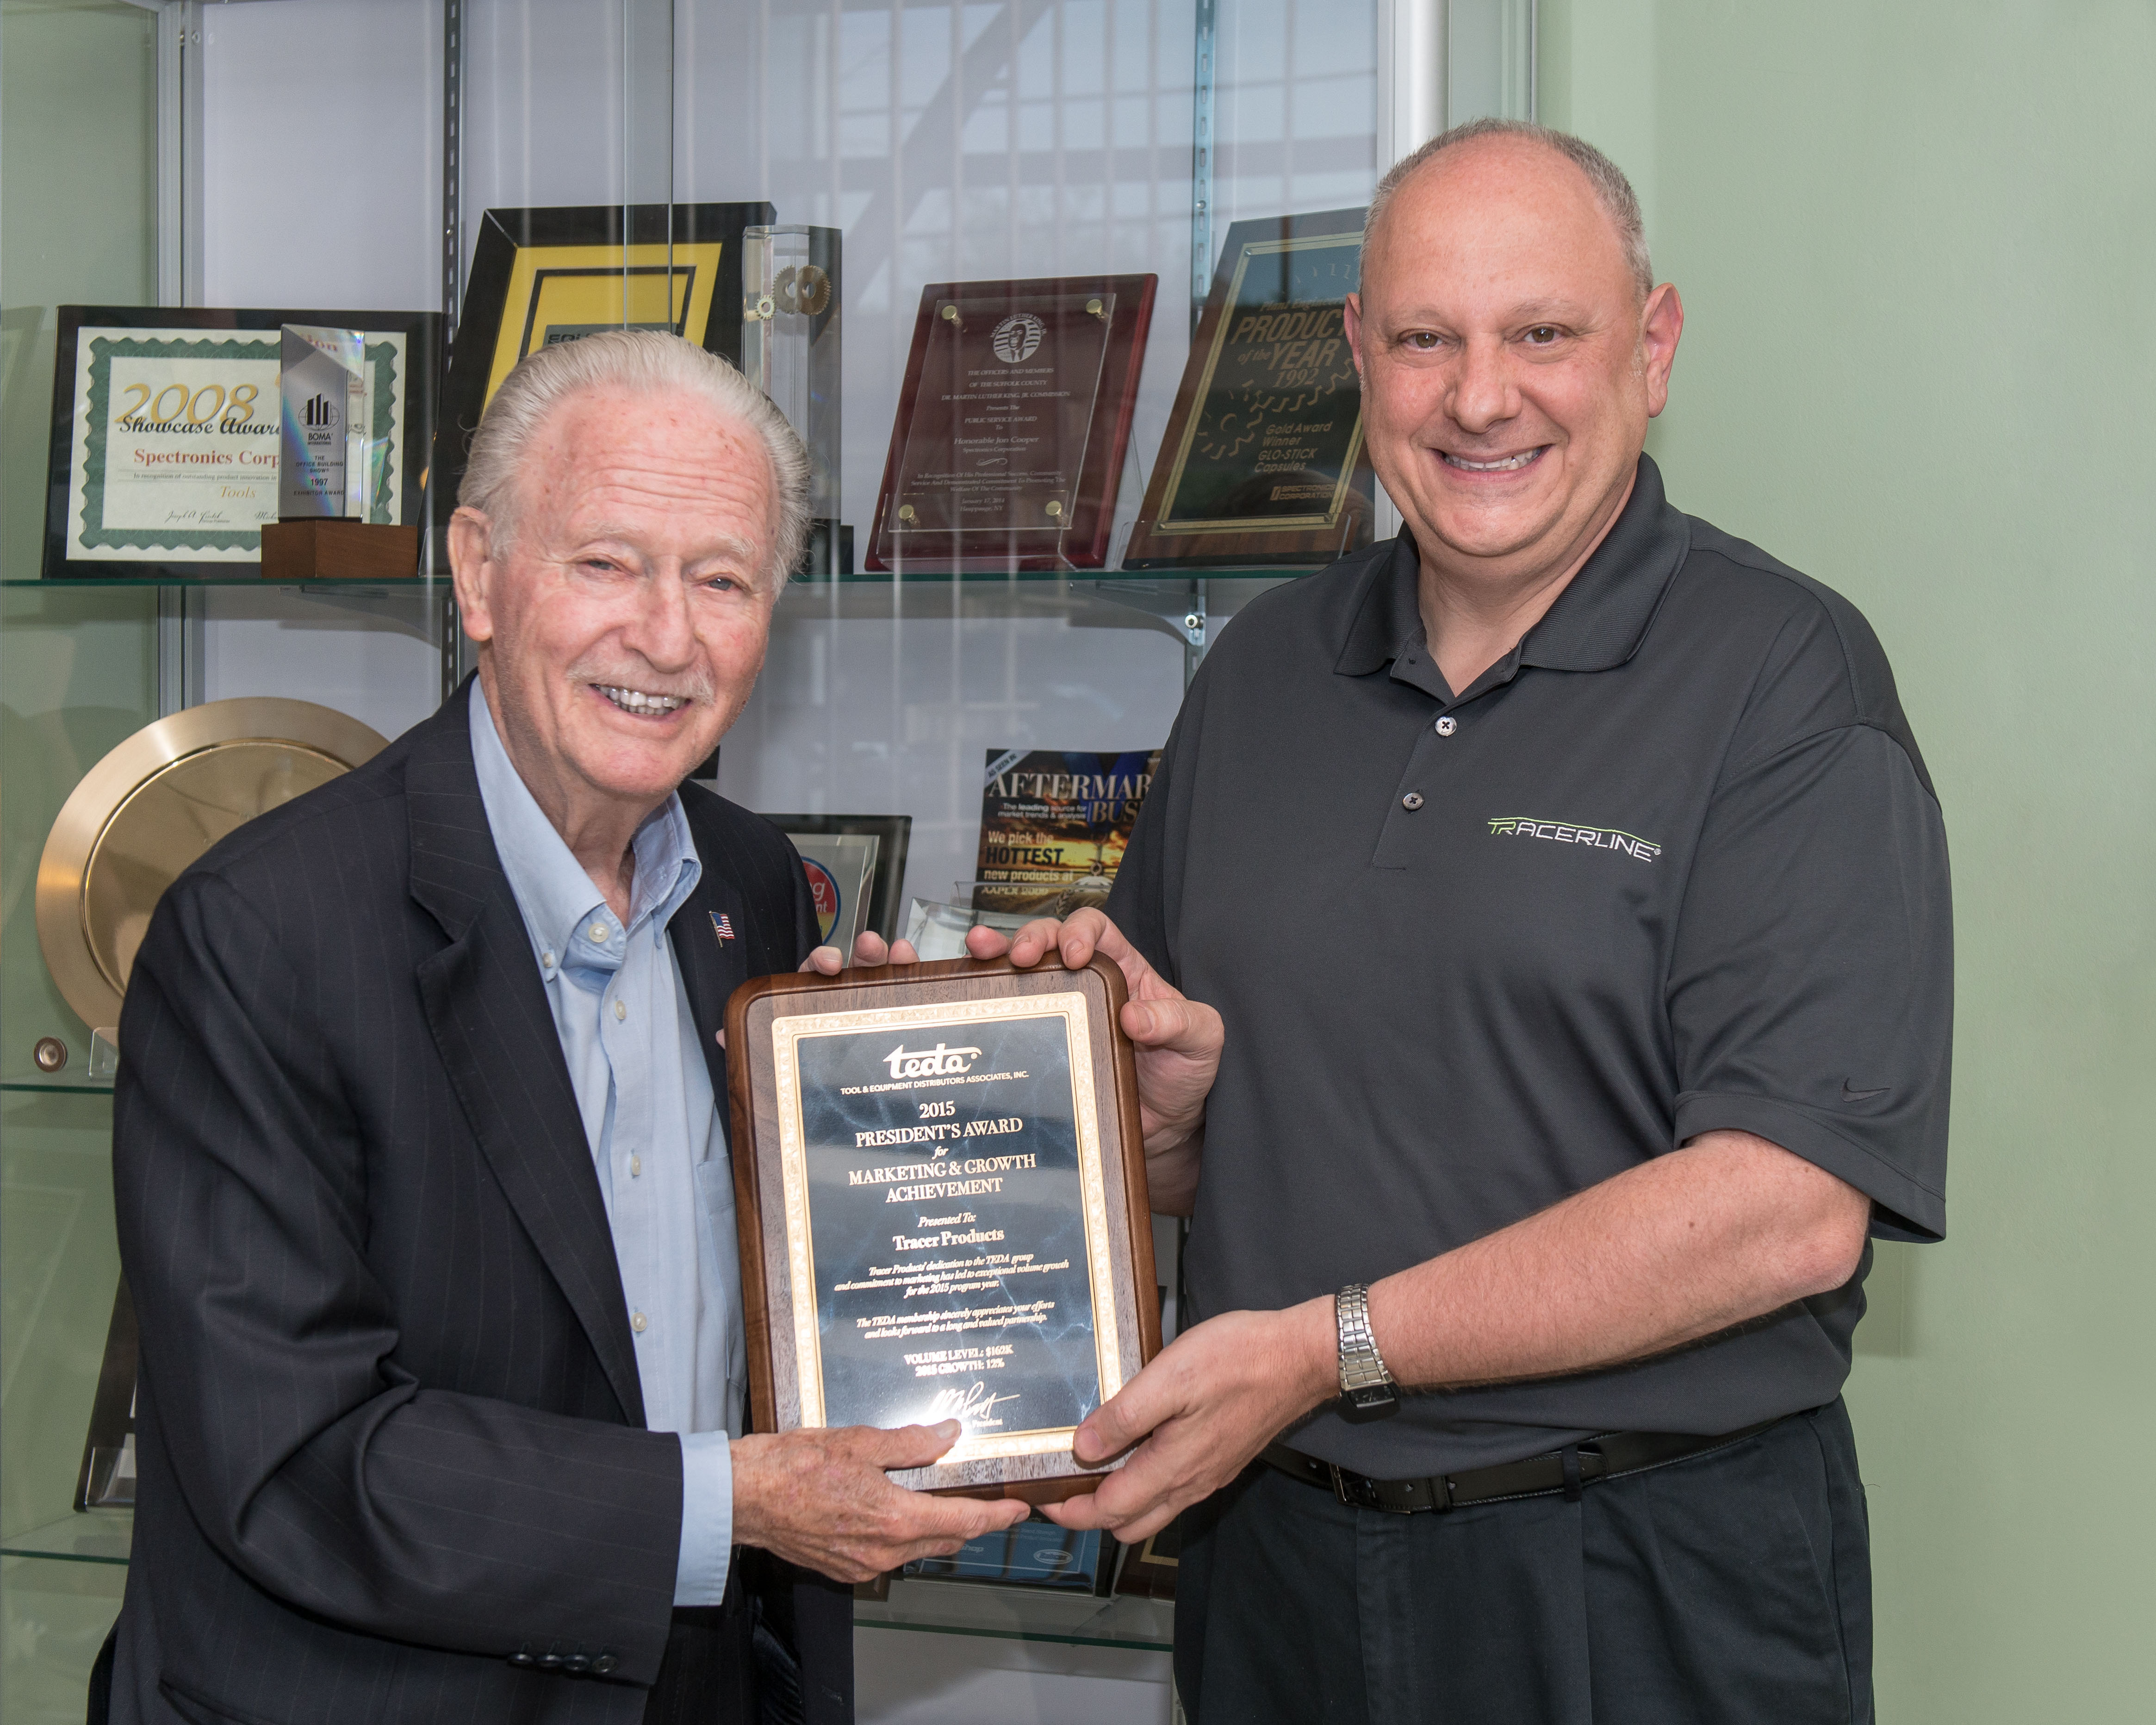 Tracer Products Earns Award for Market Growth Achievement